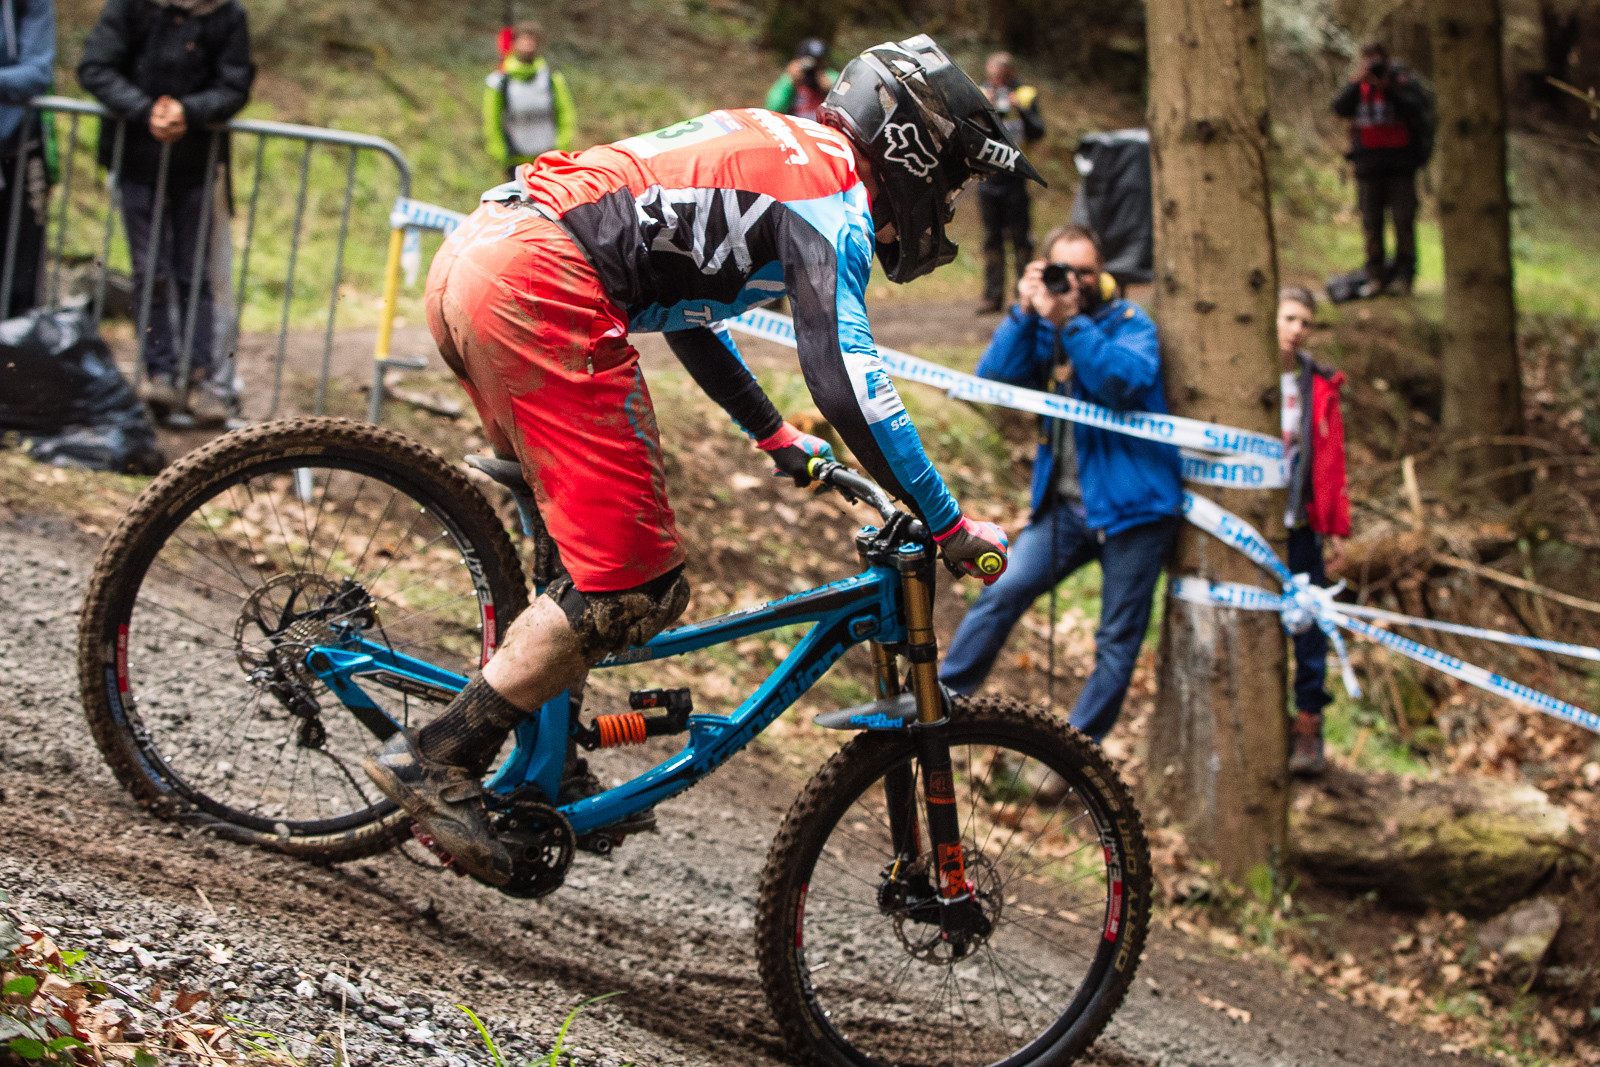 Transition TR500 Bottom Out at Lourdes World Cup - G-Out Project - Lourdes World Cup DH - Mountain Biking Pictures - Vital MTB